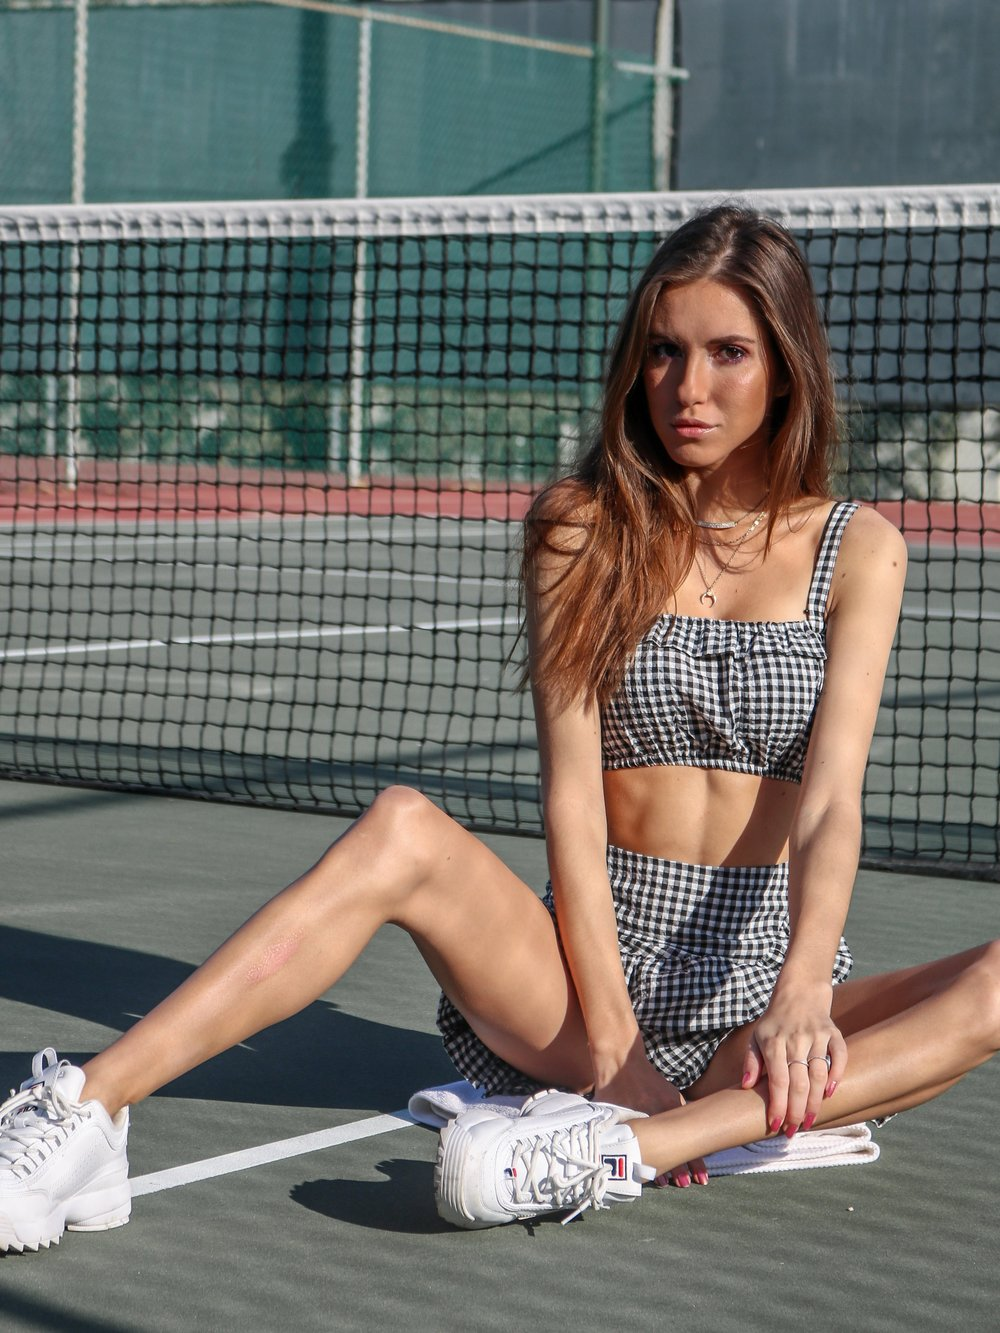 The+Hungarian+Brunette+gingham+set+%284+of+13%29.jpg